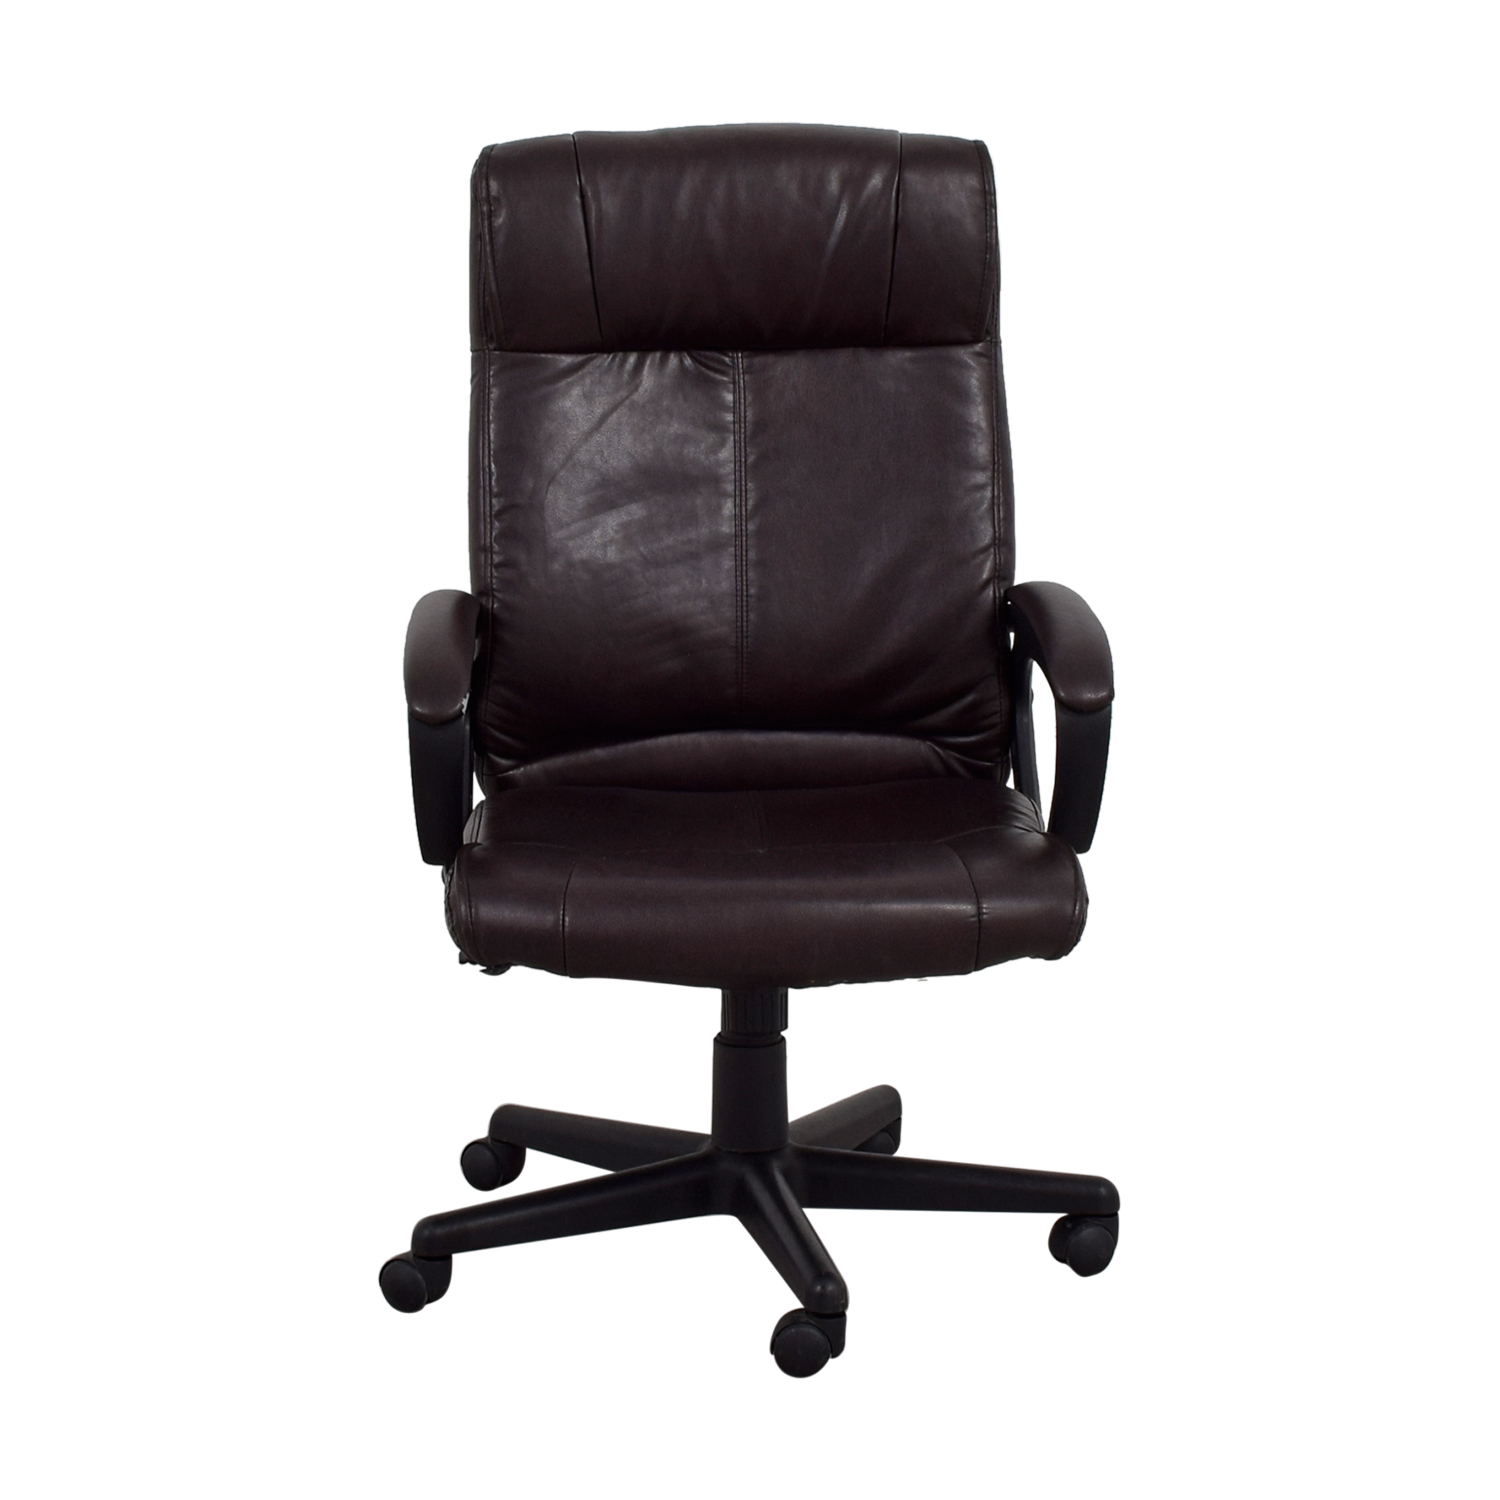 Brown Leather Desk Chair for sale